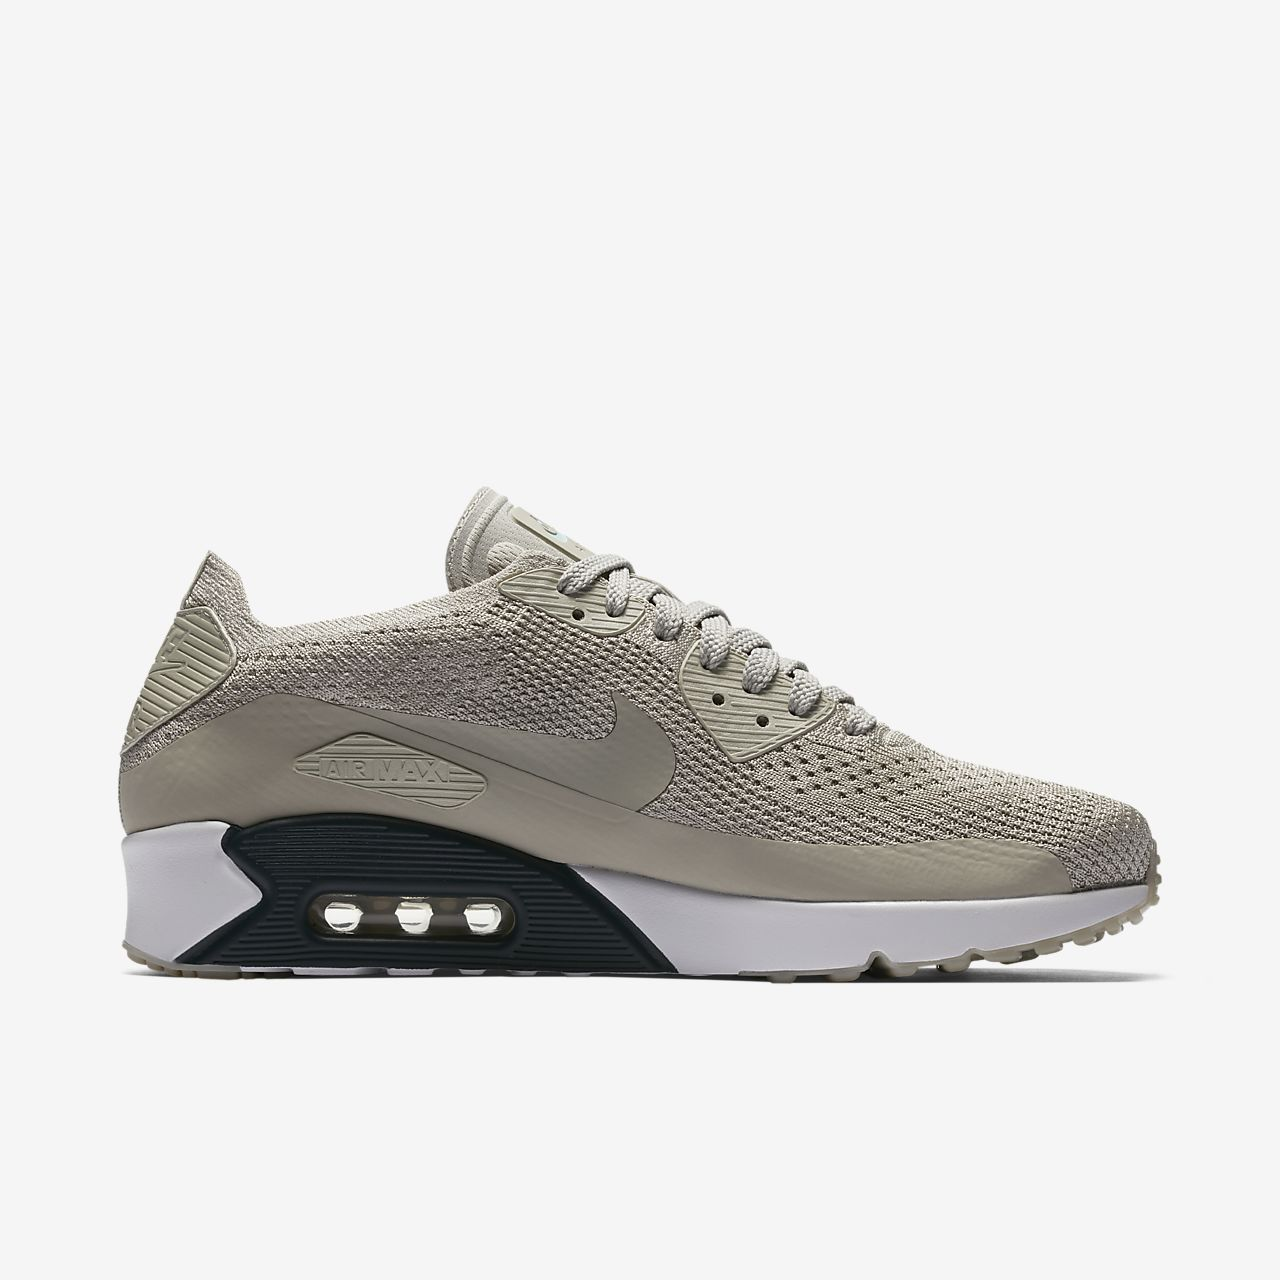 nike men's air max 90 ultra essential running shoe nz